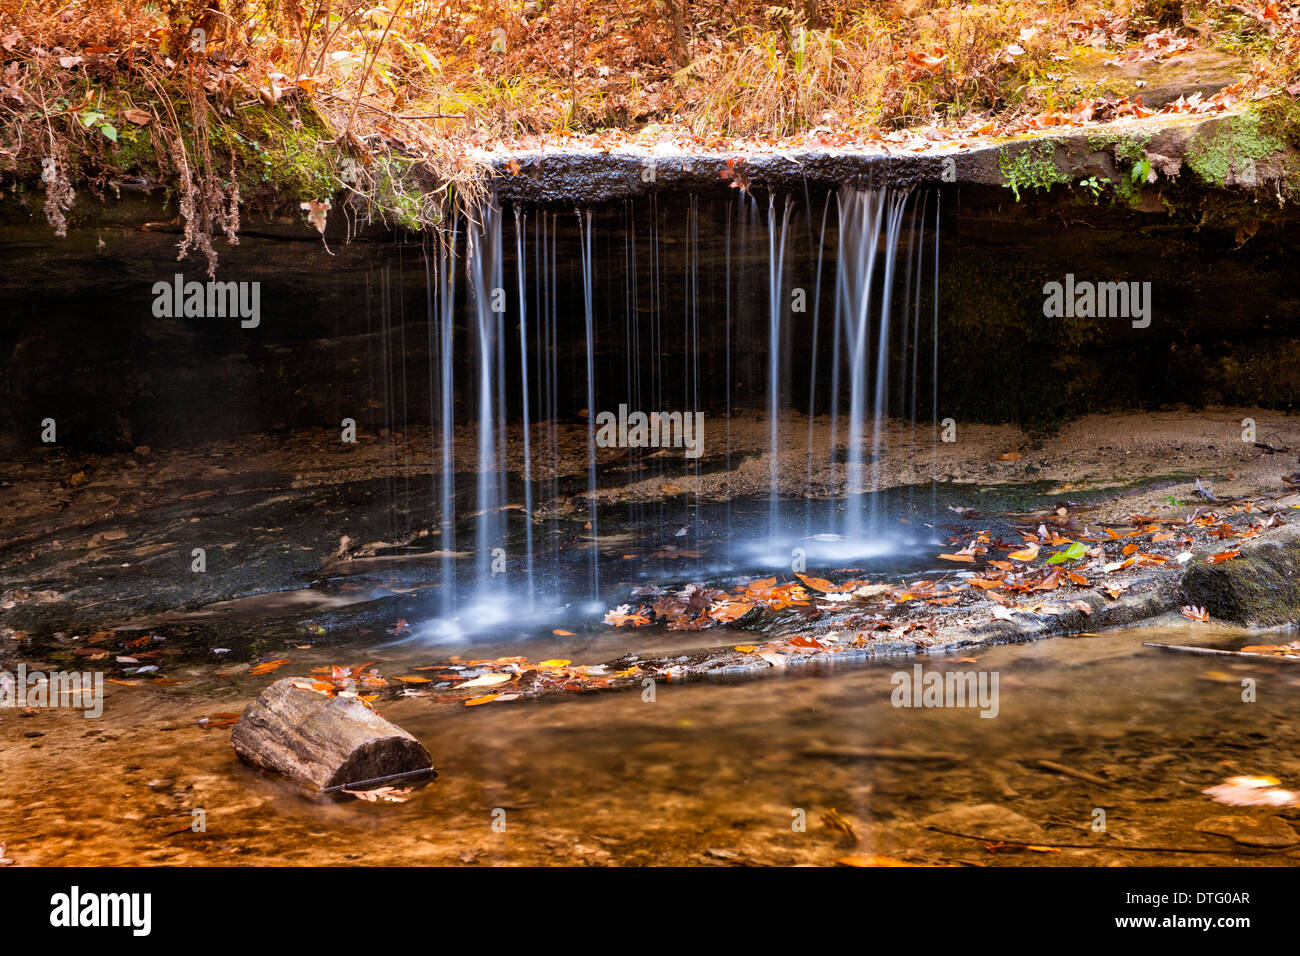 Pickle Springs Natural Area - Pickle Springs - Stock Image